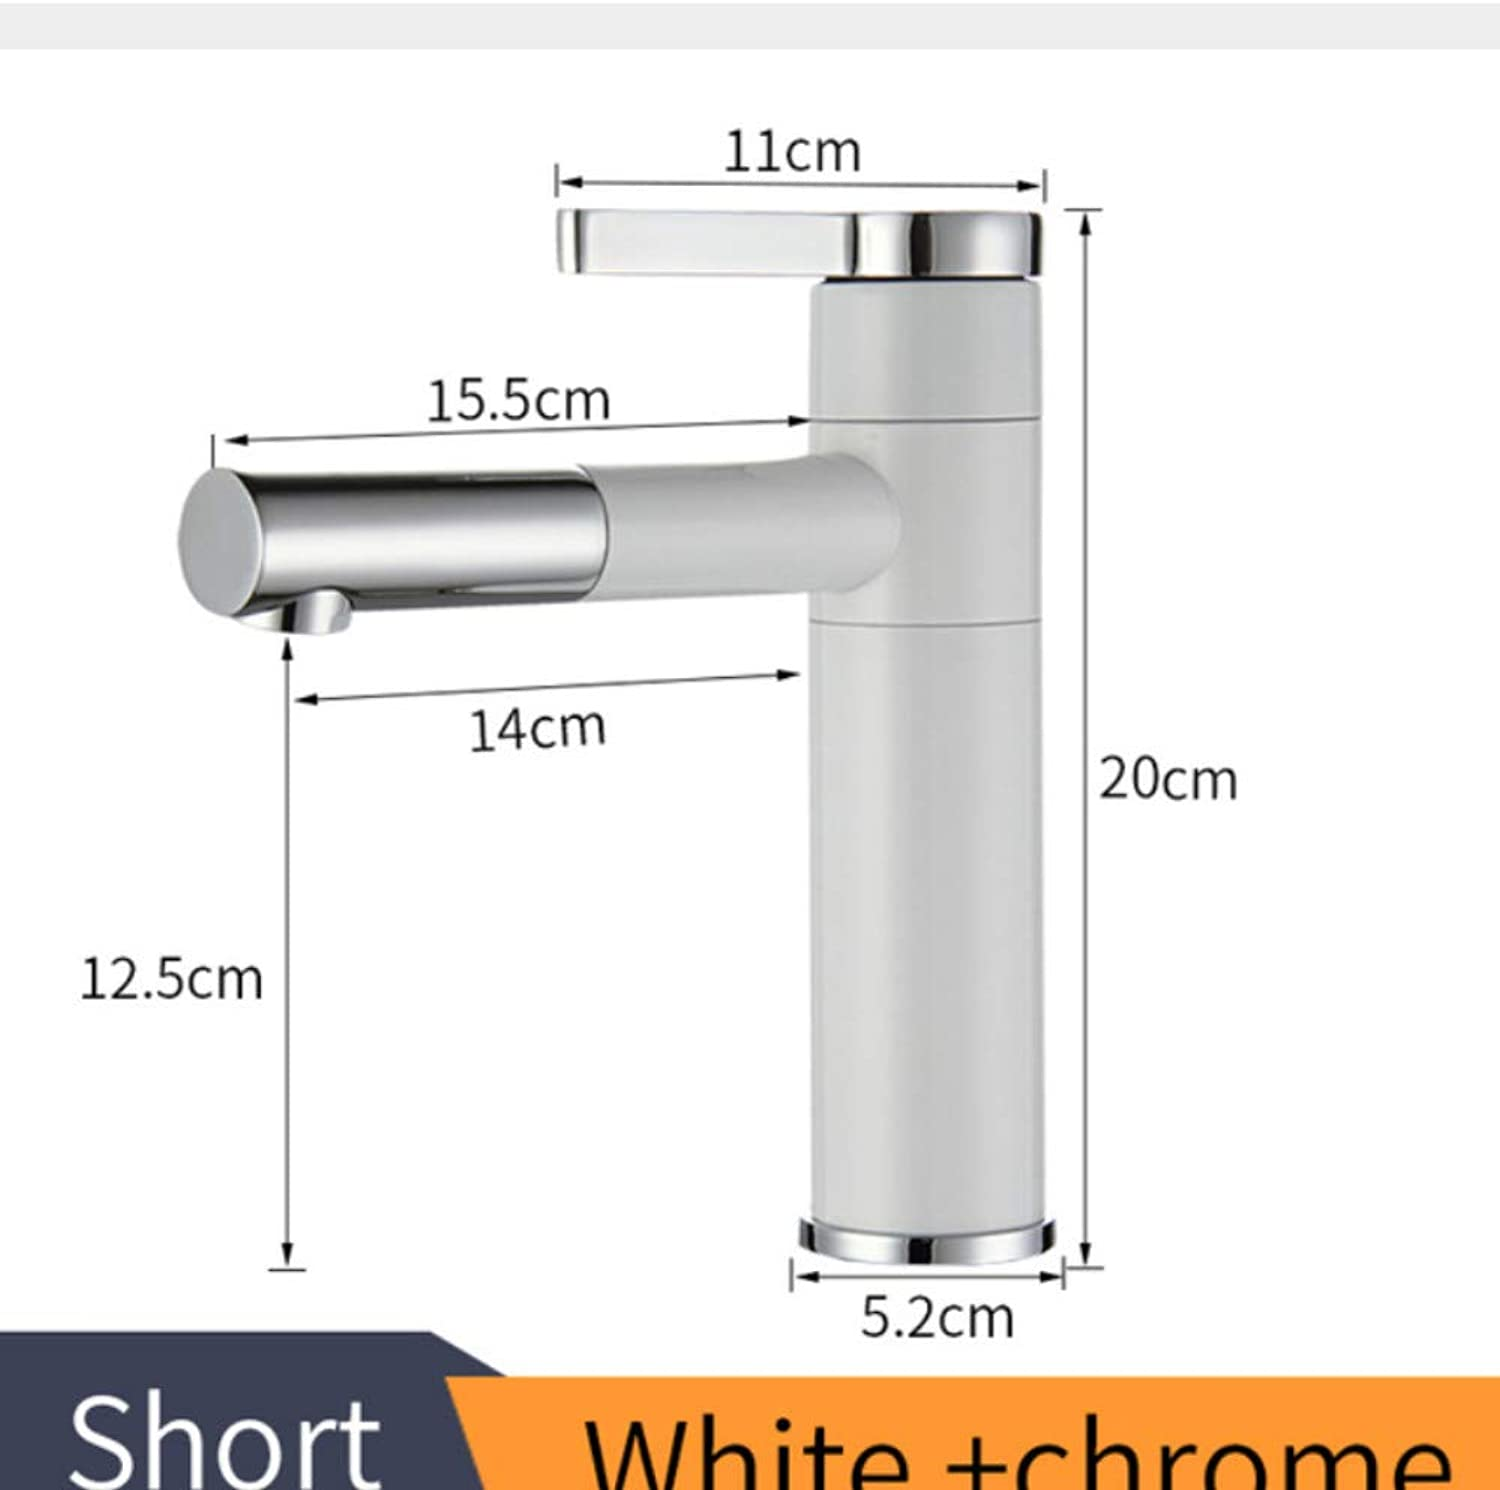 Ganjue Basin Mixer Tap 360 Degree redate Type Basin Faucet White and Silver Chrome Finish Bathroom Faucets Single Hand Bathroom,2